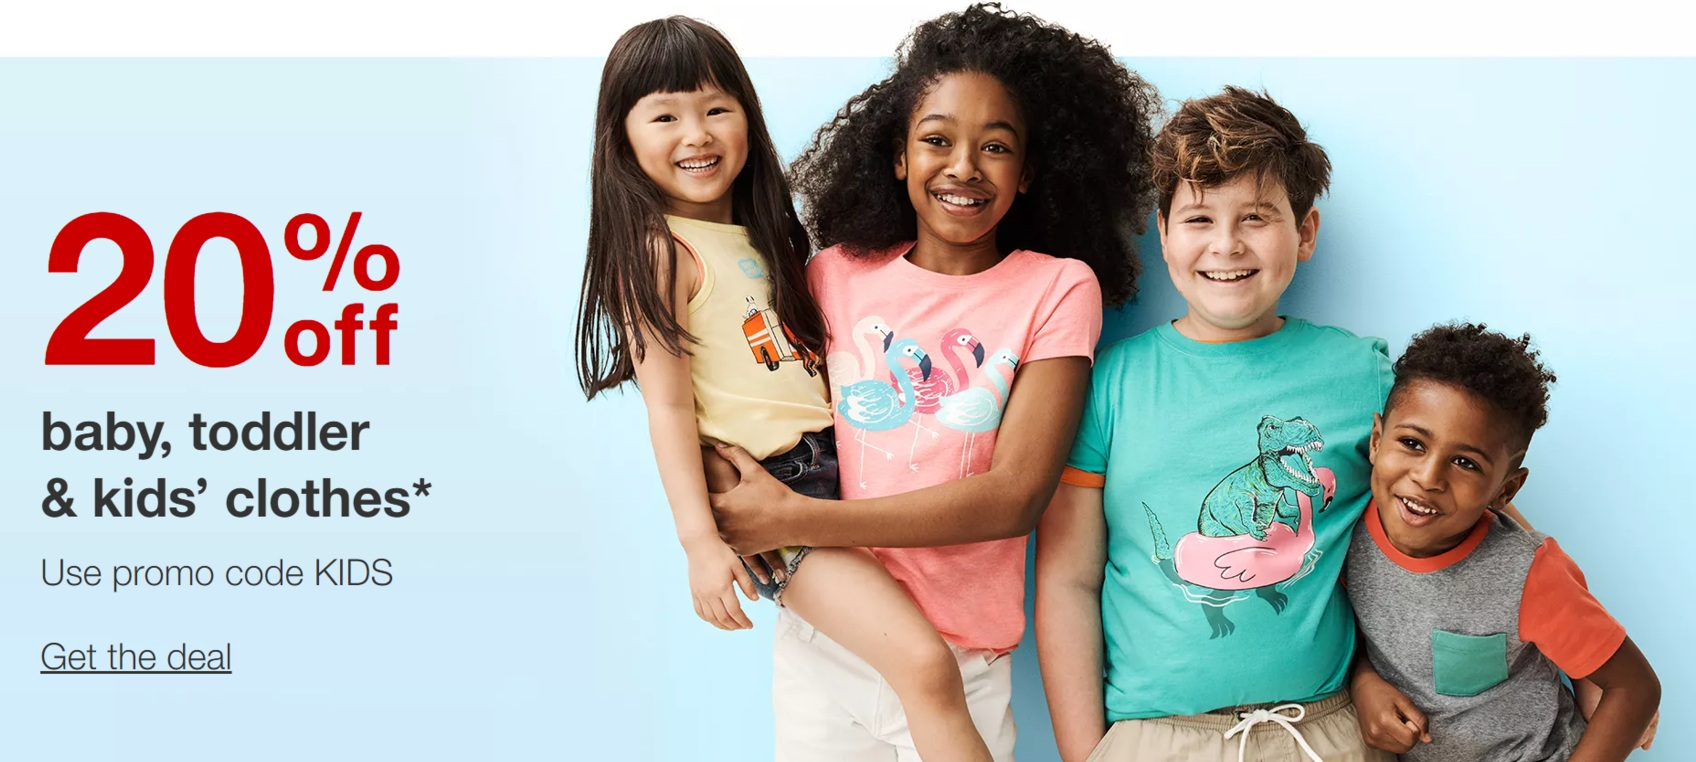 8a41137d7 20% off Target Baby and Kids clothing with code! — The Very Best ...